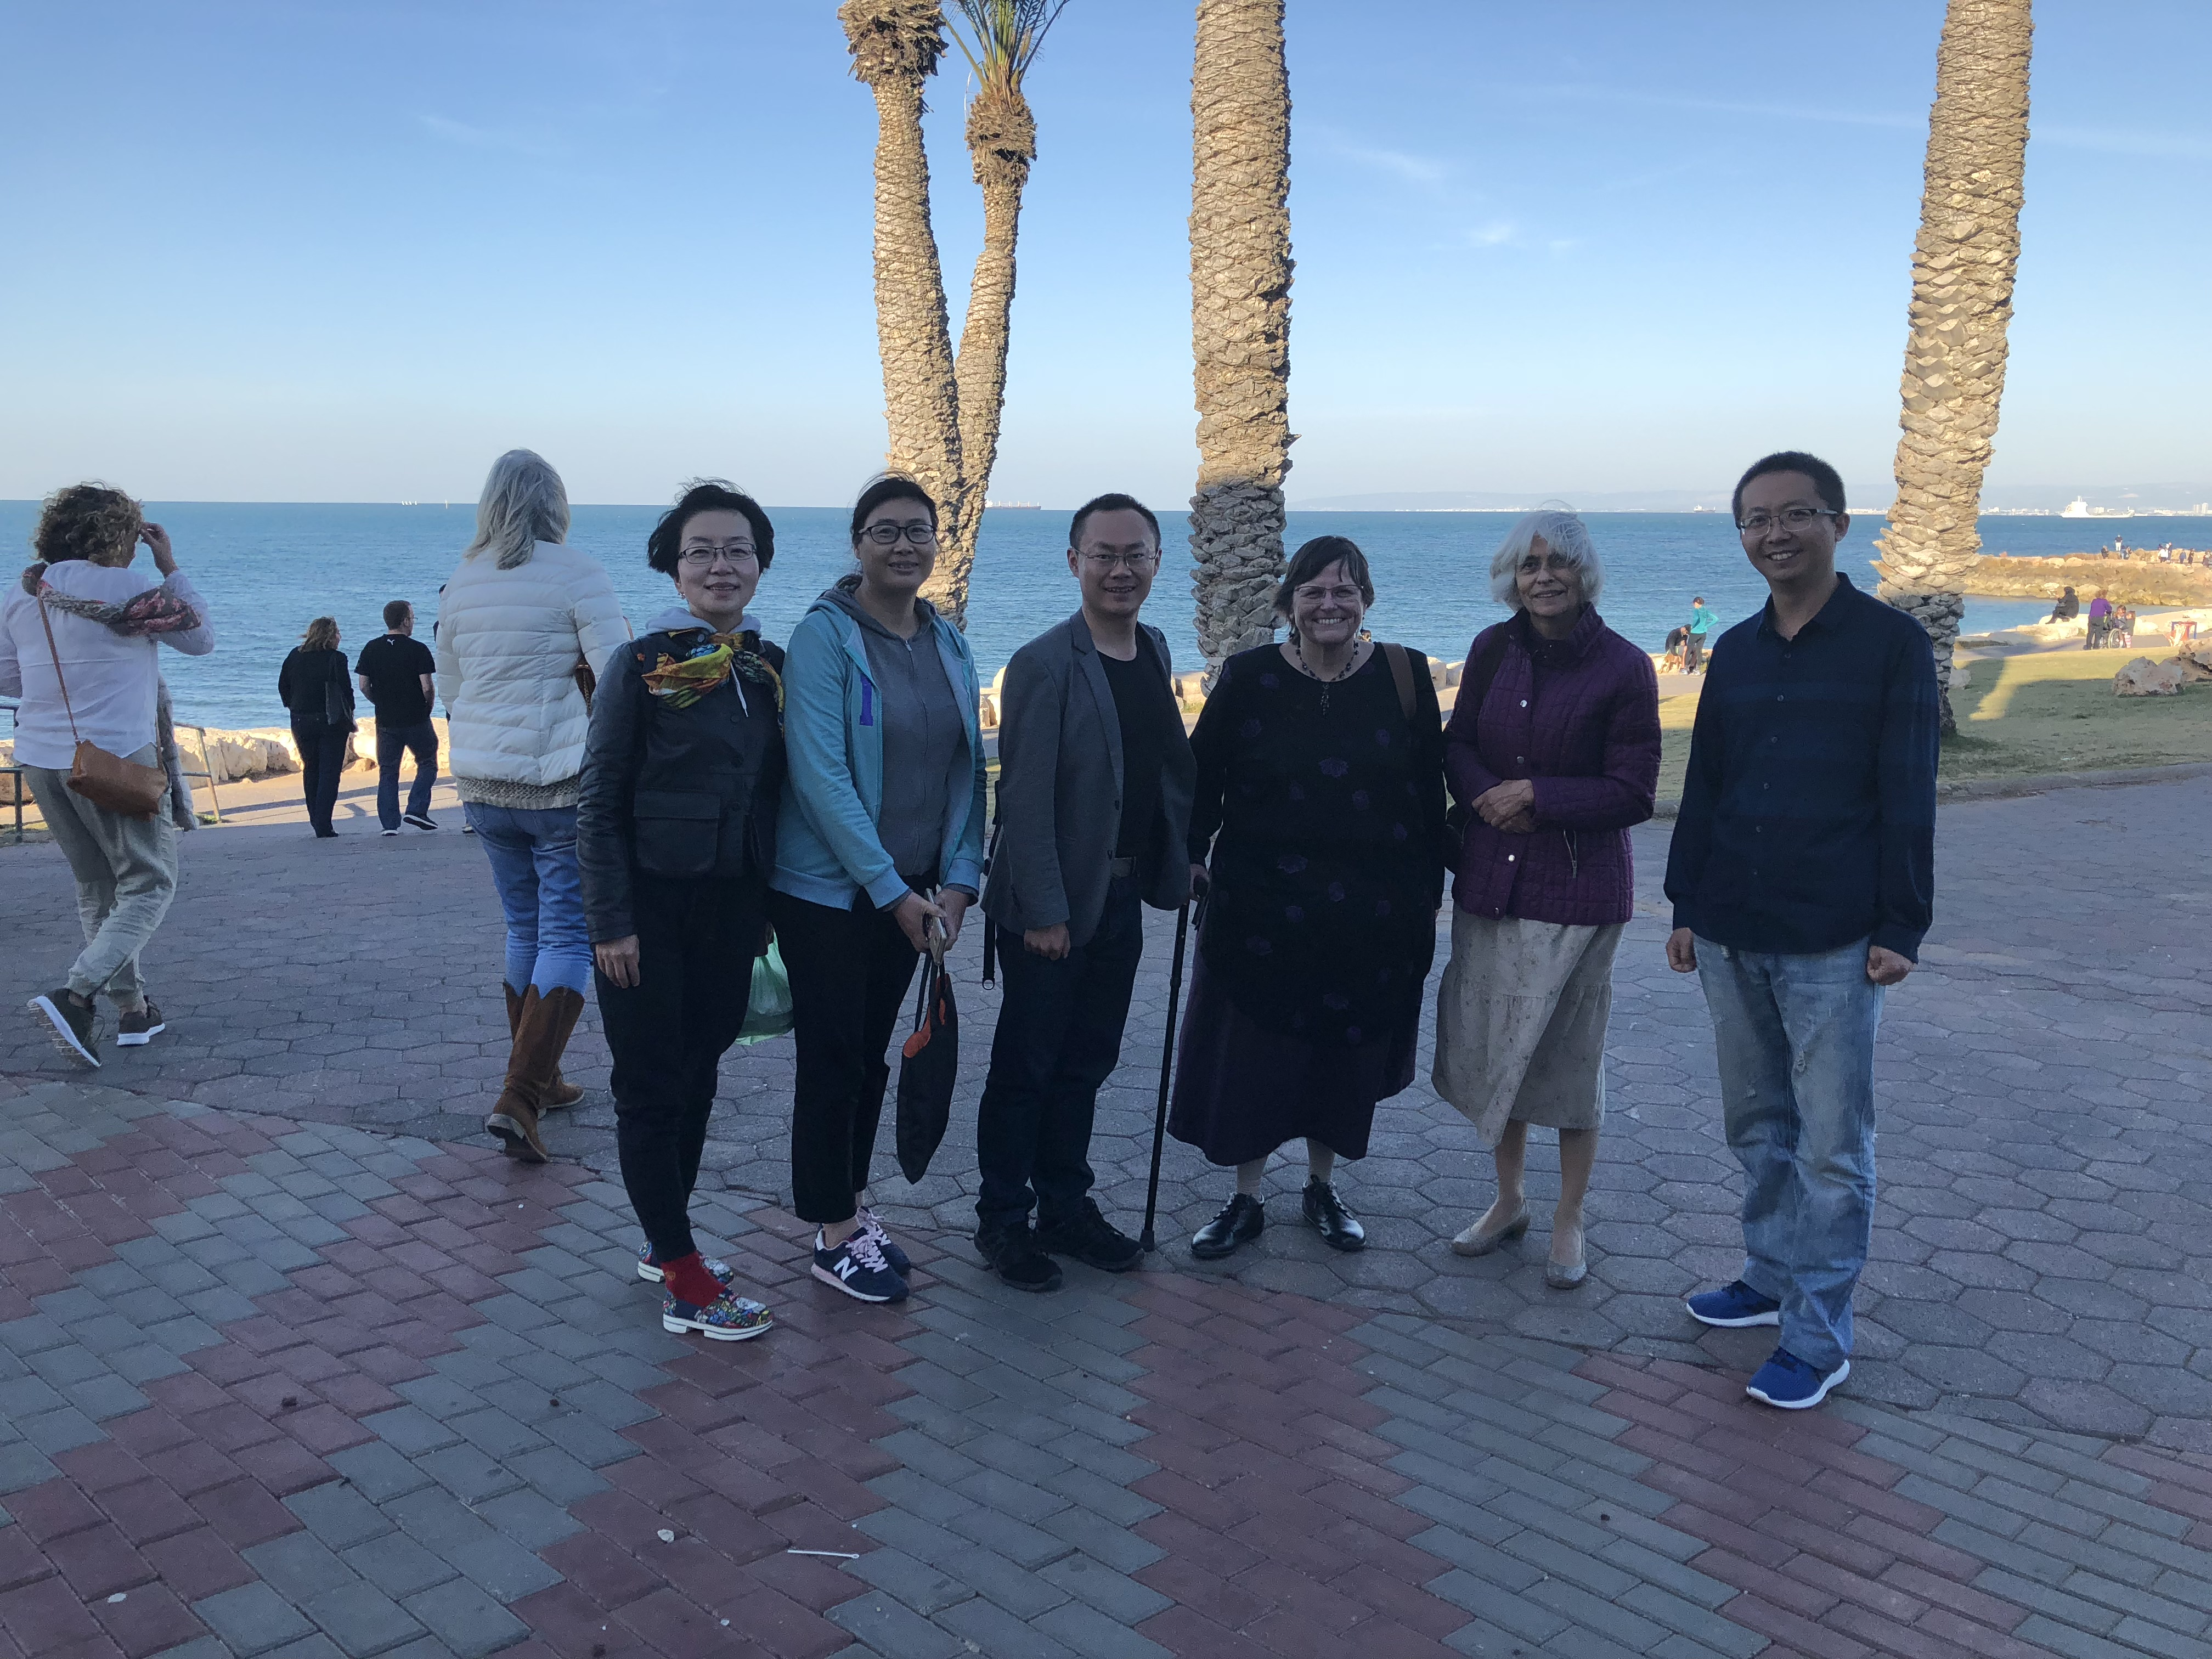 My new Chinese friends with a friend at the Bat Galim beach.